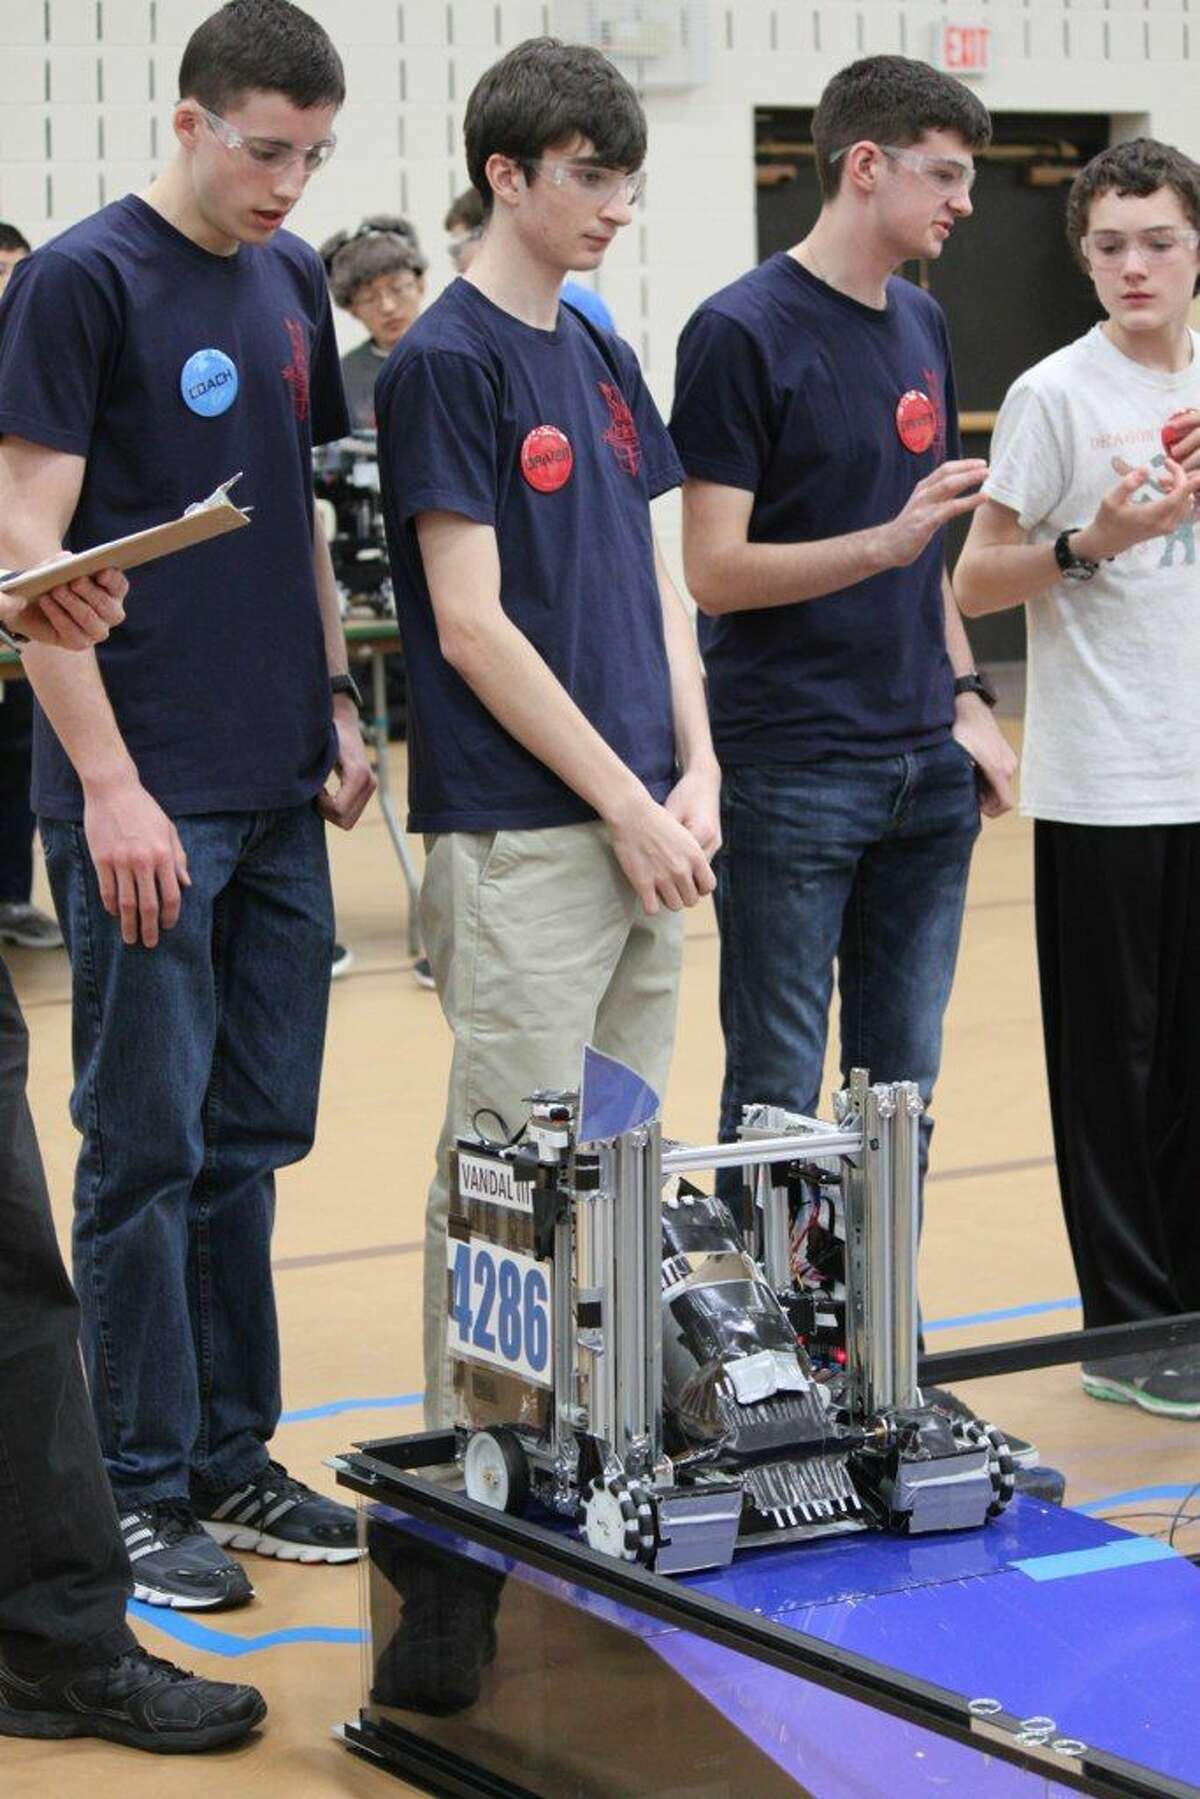 From left to right: Ryan Petschek, Tyler Green and Scott Barnet, members of Dragonoids team, prepare while a member of the Dragon Terminators team looks on.